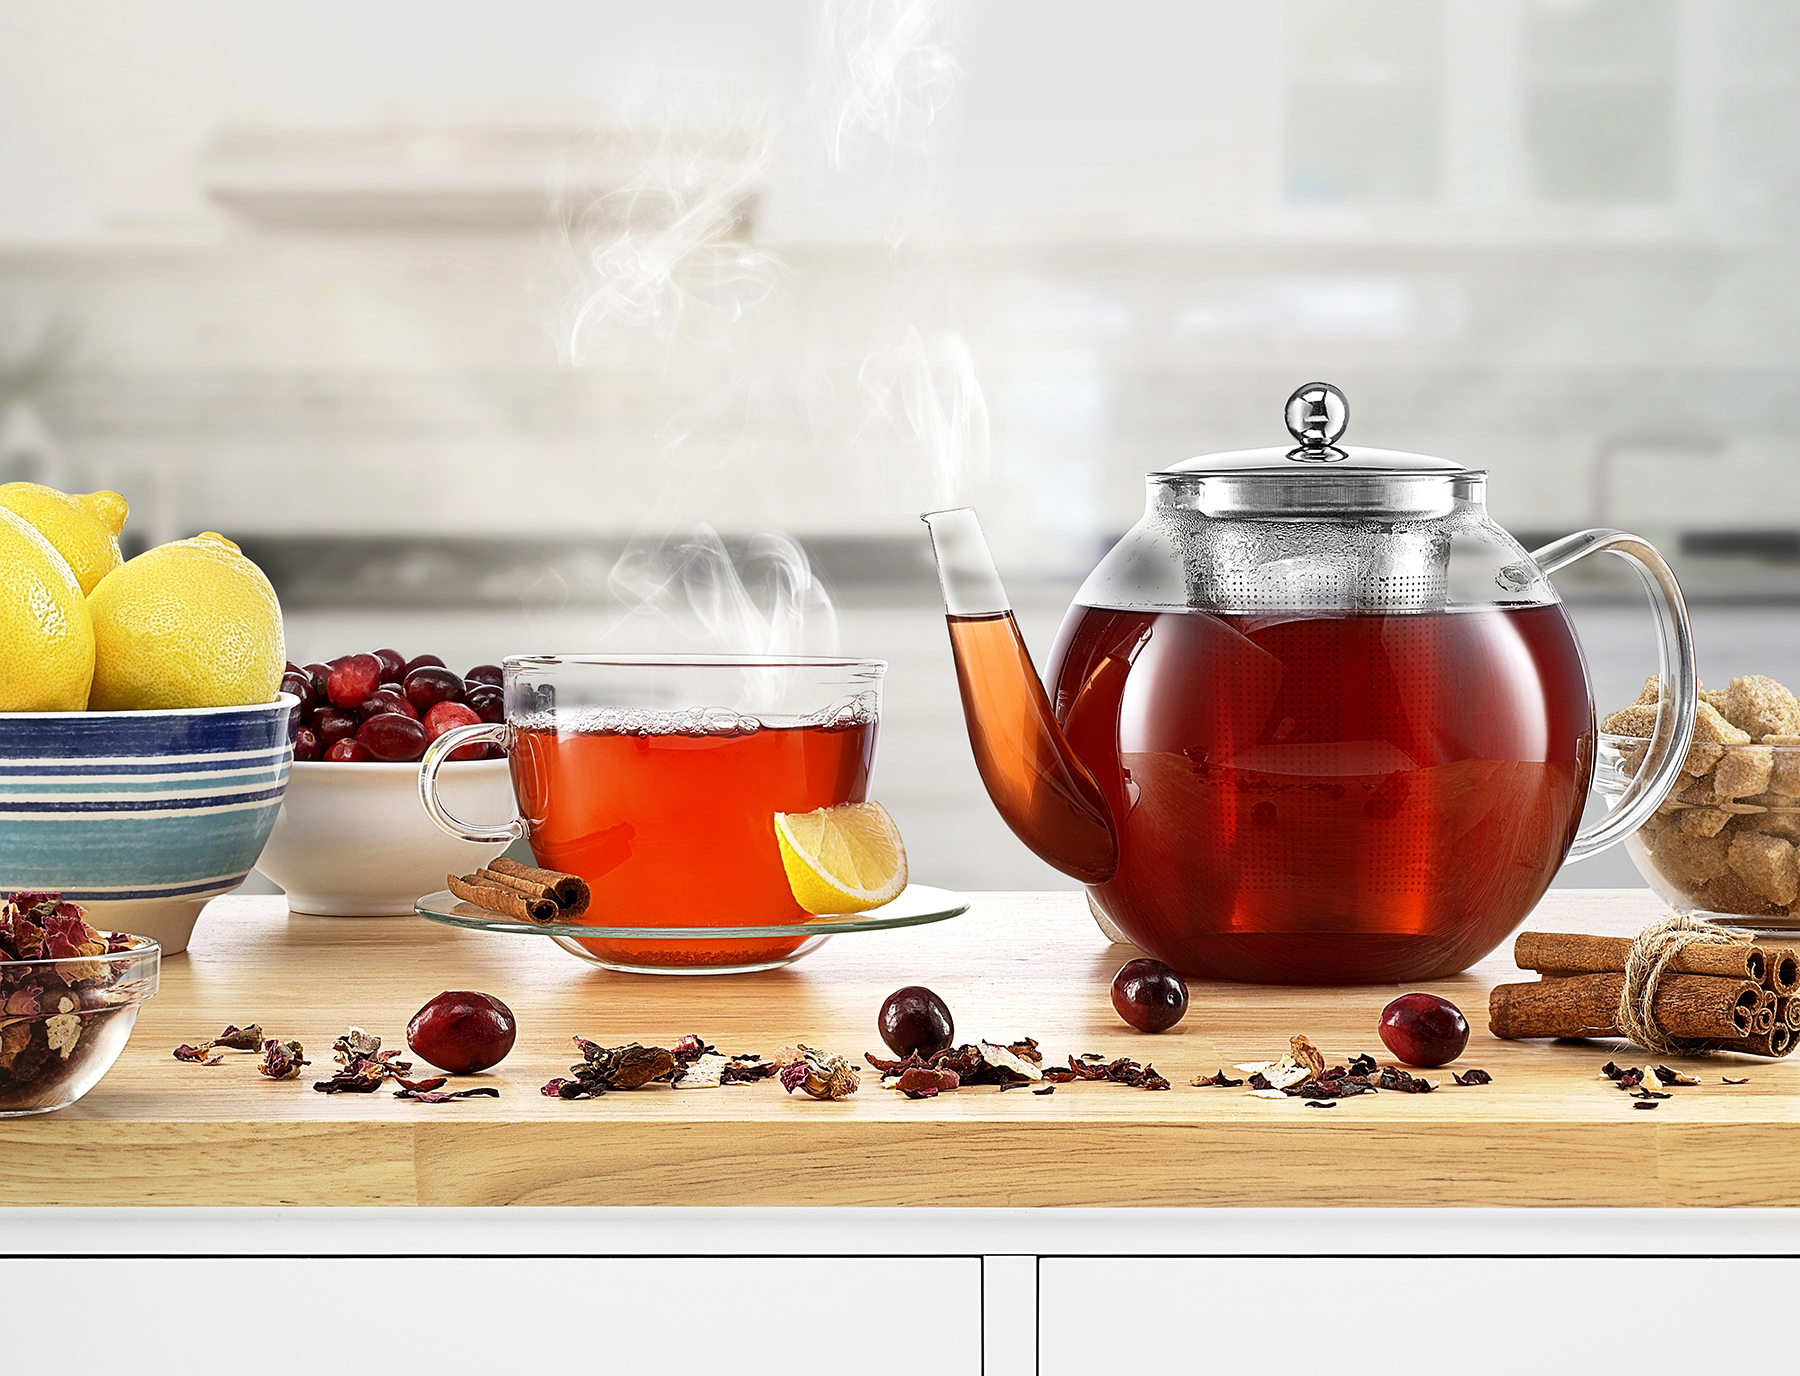 New-York-Food-Beverage-photographer-tea-kettle